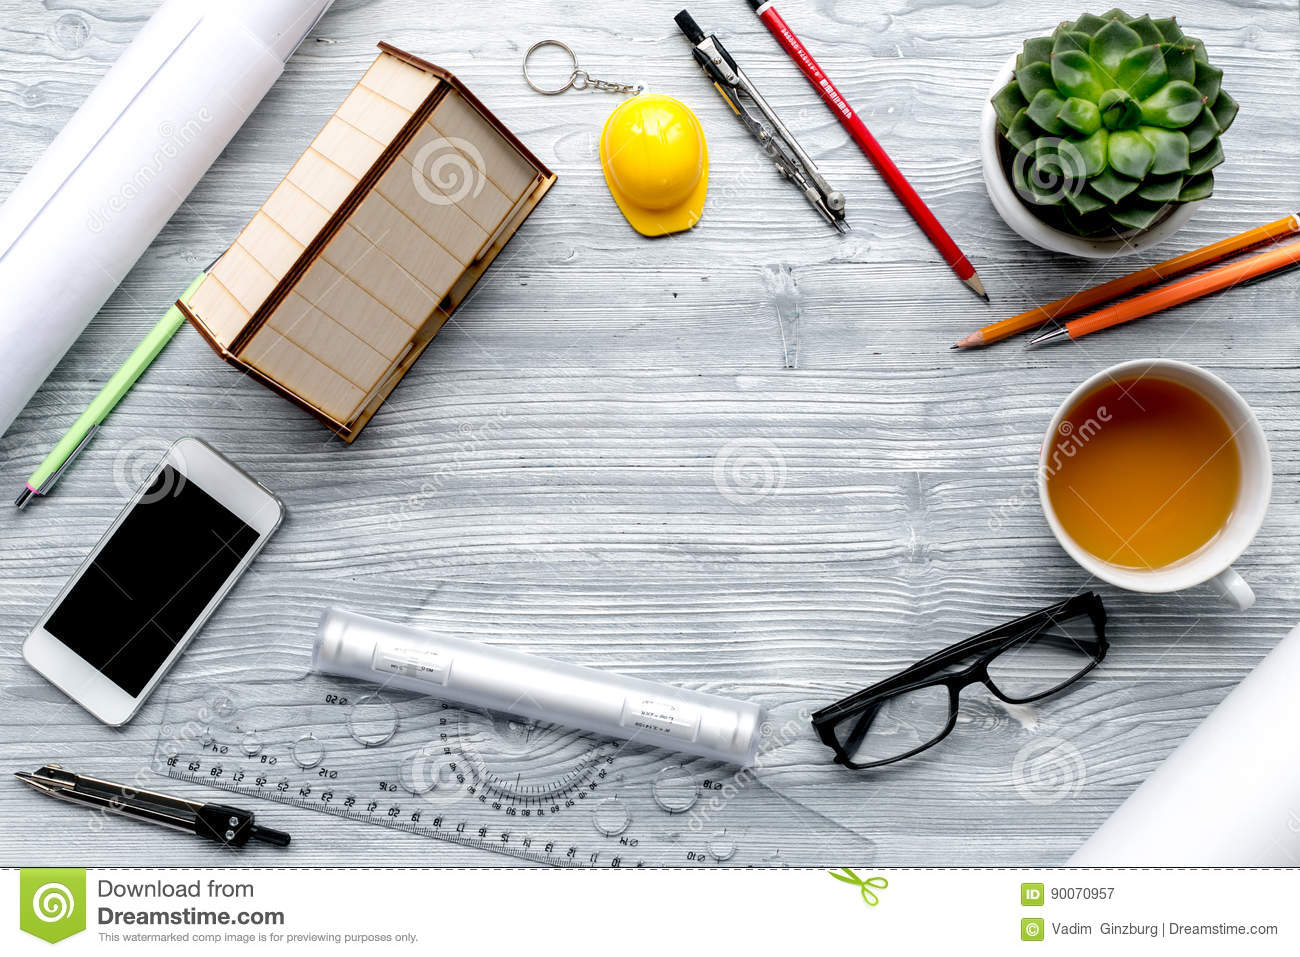 Architect Desk profession concept with architect desk and tools wooden background